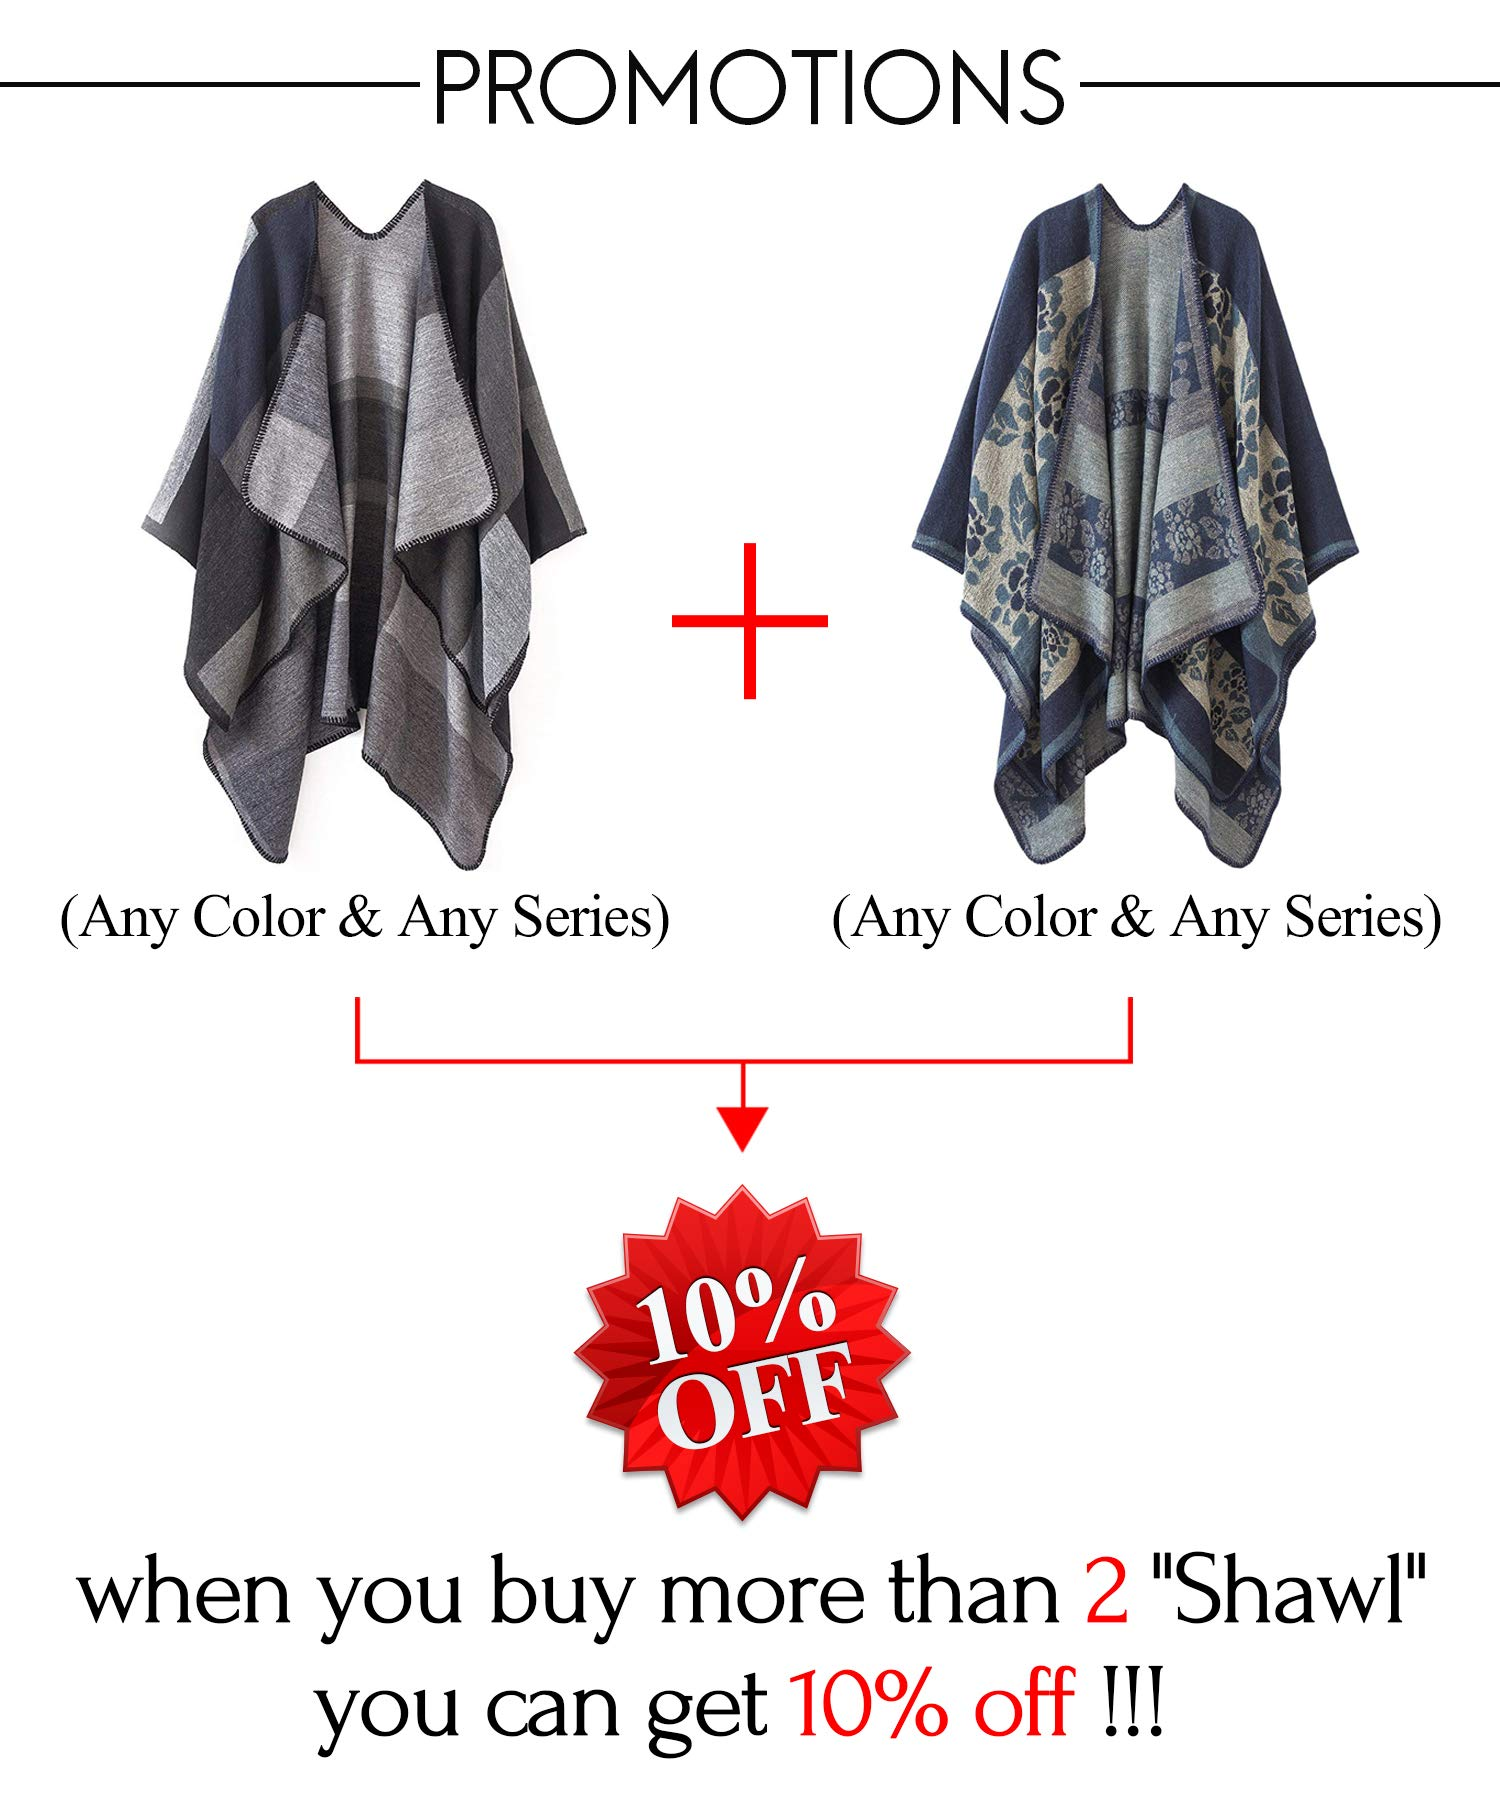 Women Plaid Shawls and Wraps,Winter Poncho Cape,Soft Cashmere Cloak,Oversized Long Cardigan Sweaters(Black) by KirGiabo (Image #8)